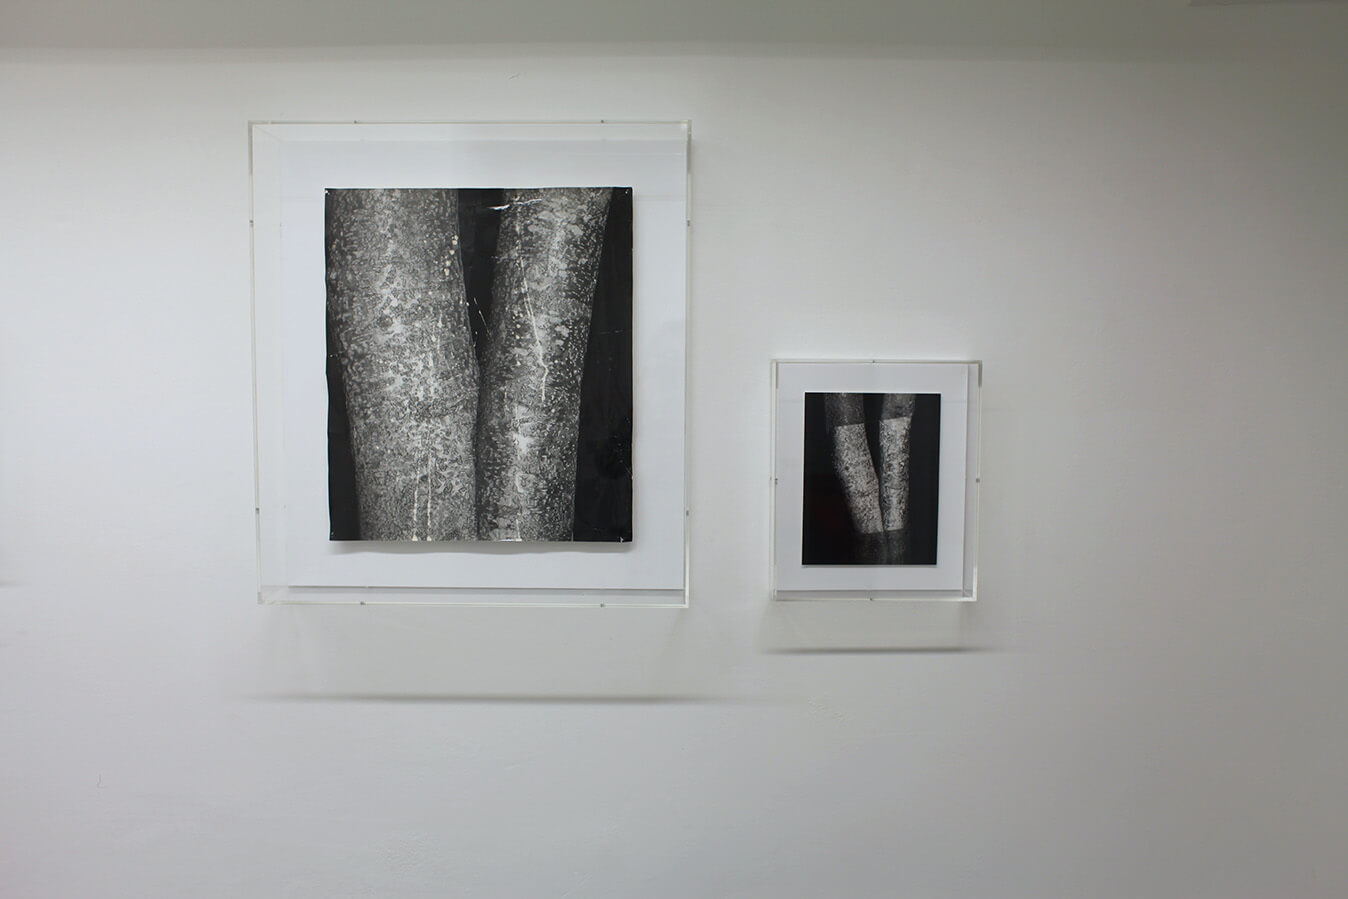 Clare Strand Rubbings Installation 2 Low